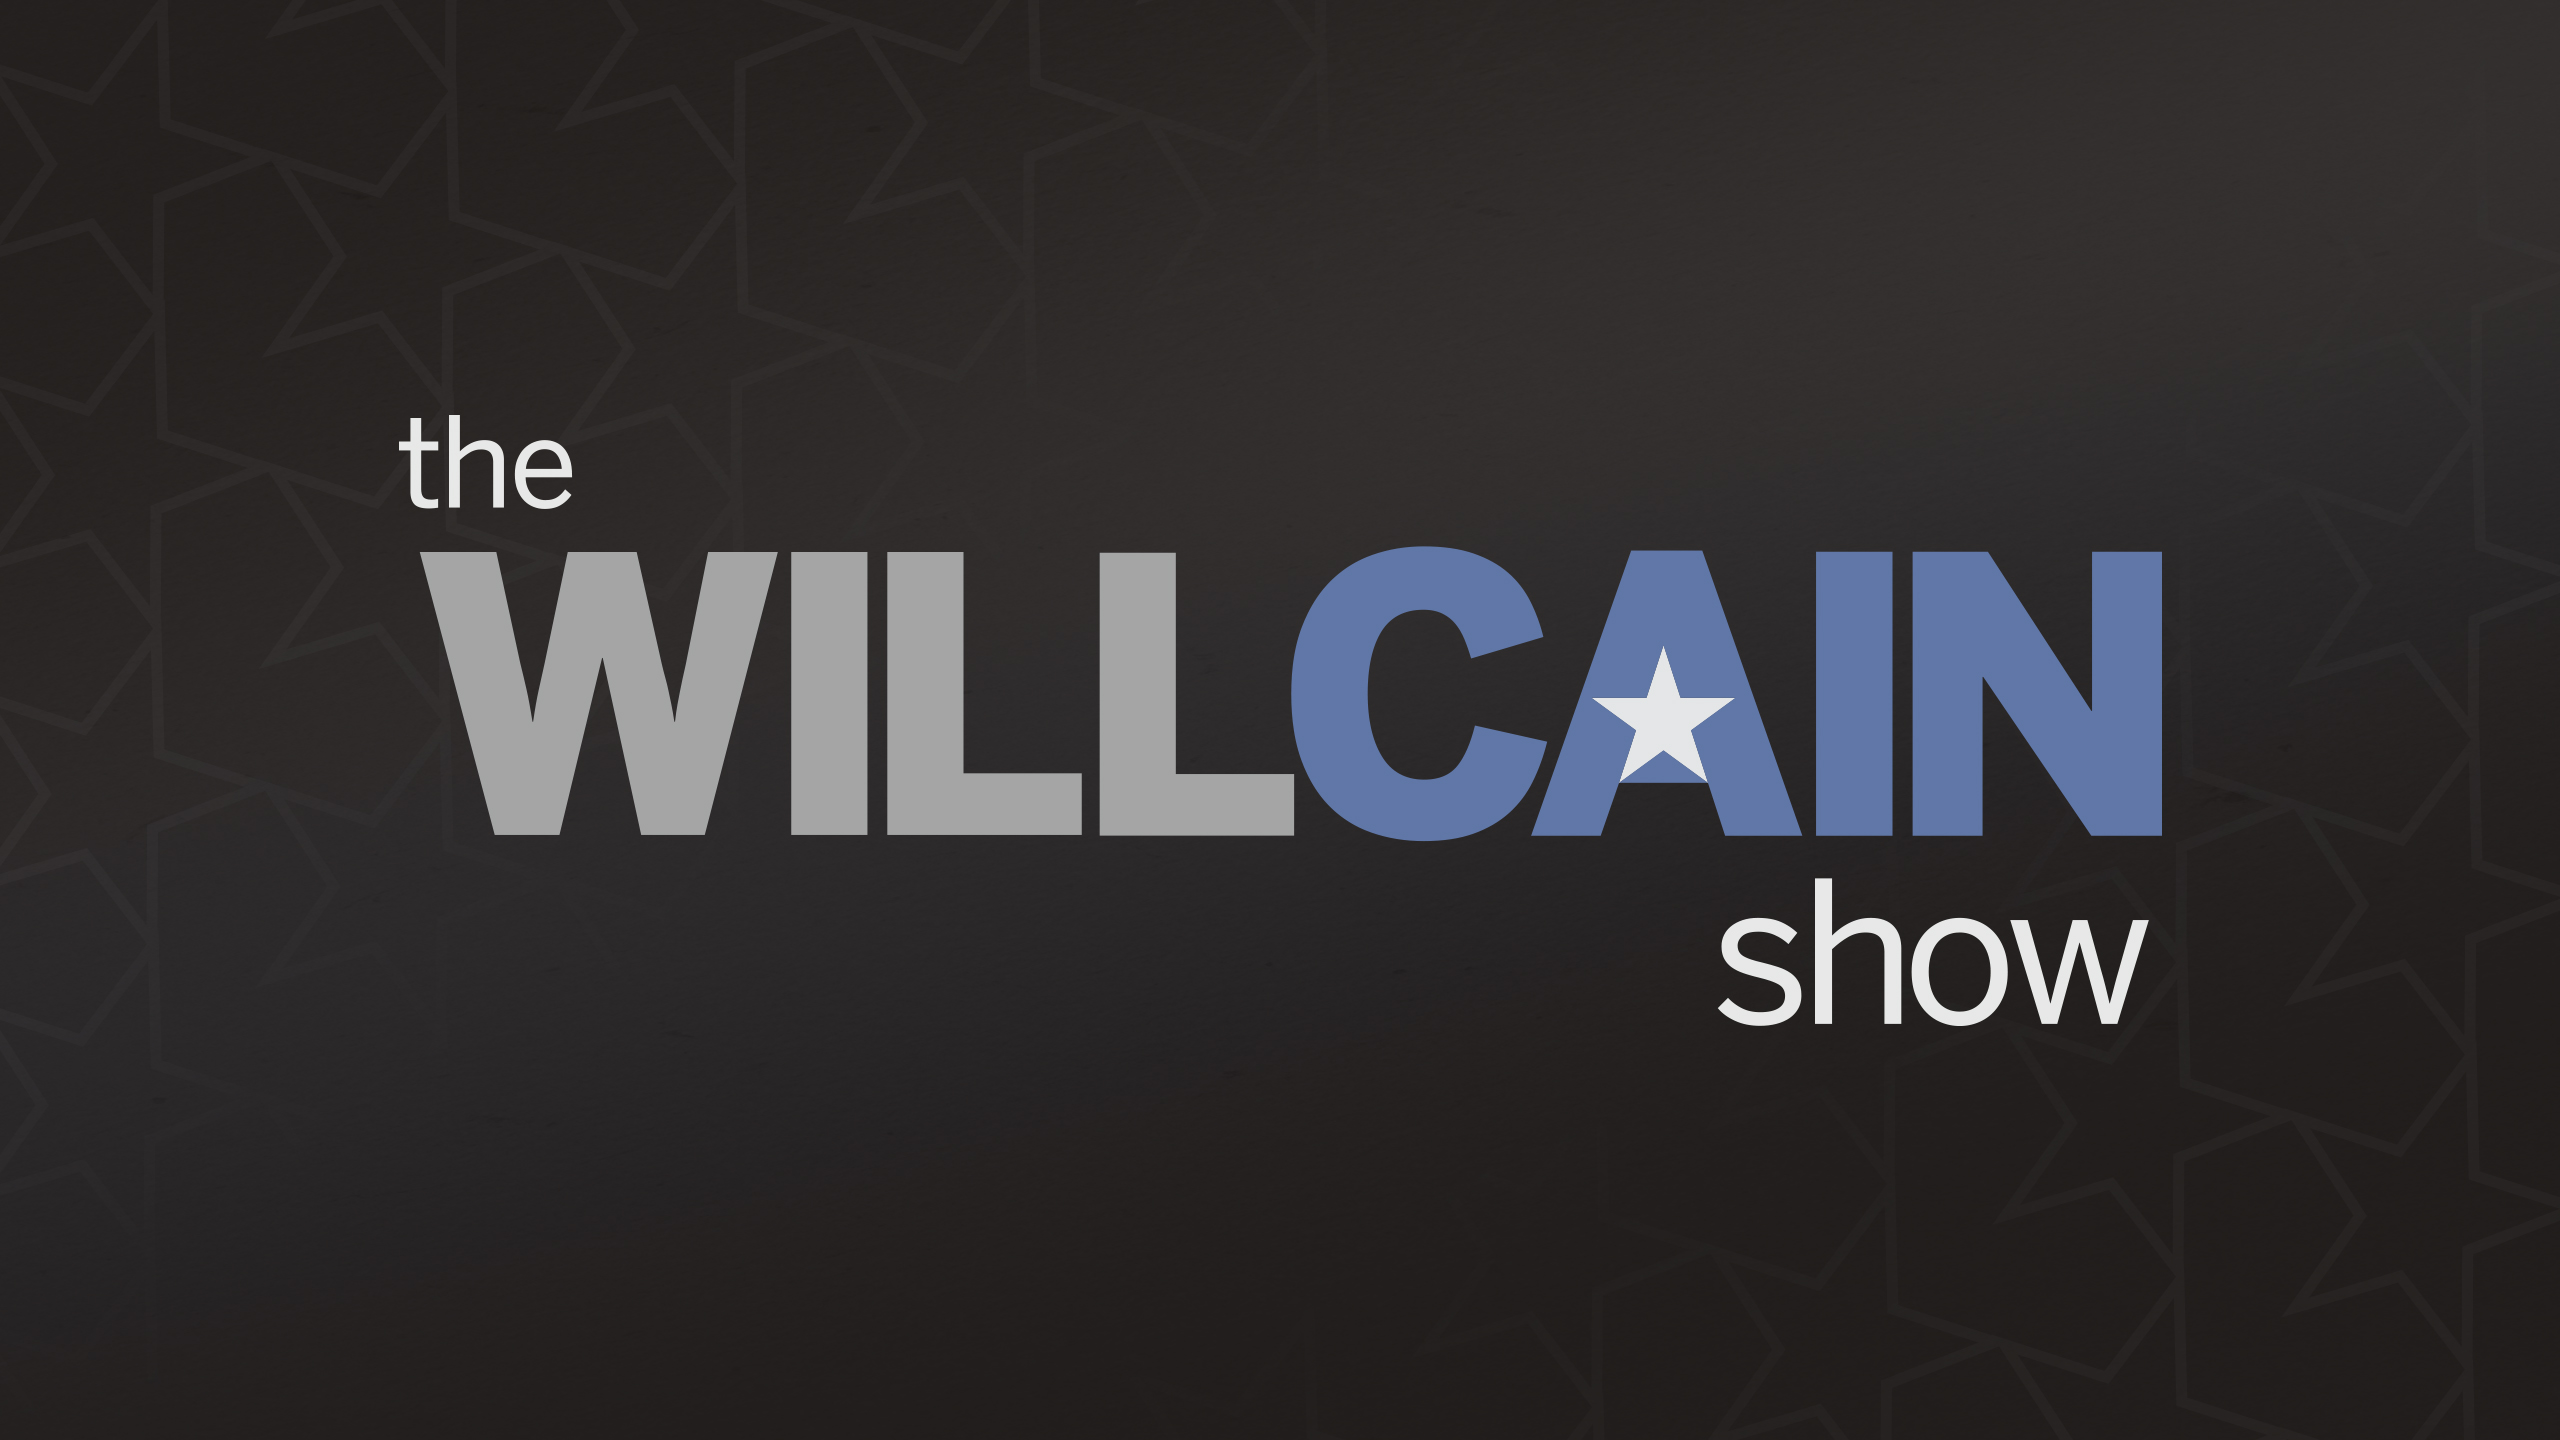 Thu, 3/21 - The Will Cain Show Presented by Progressive